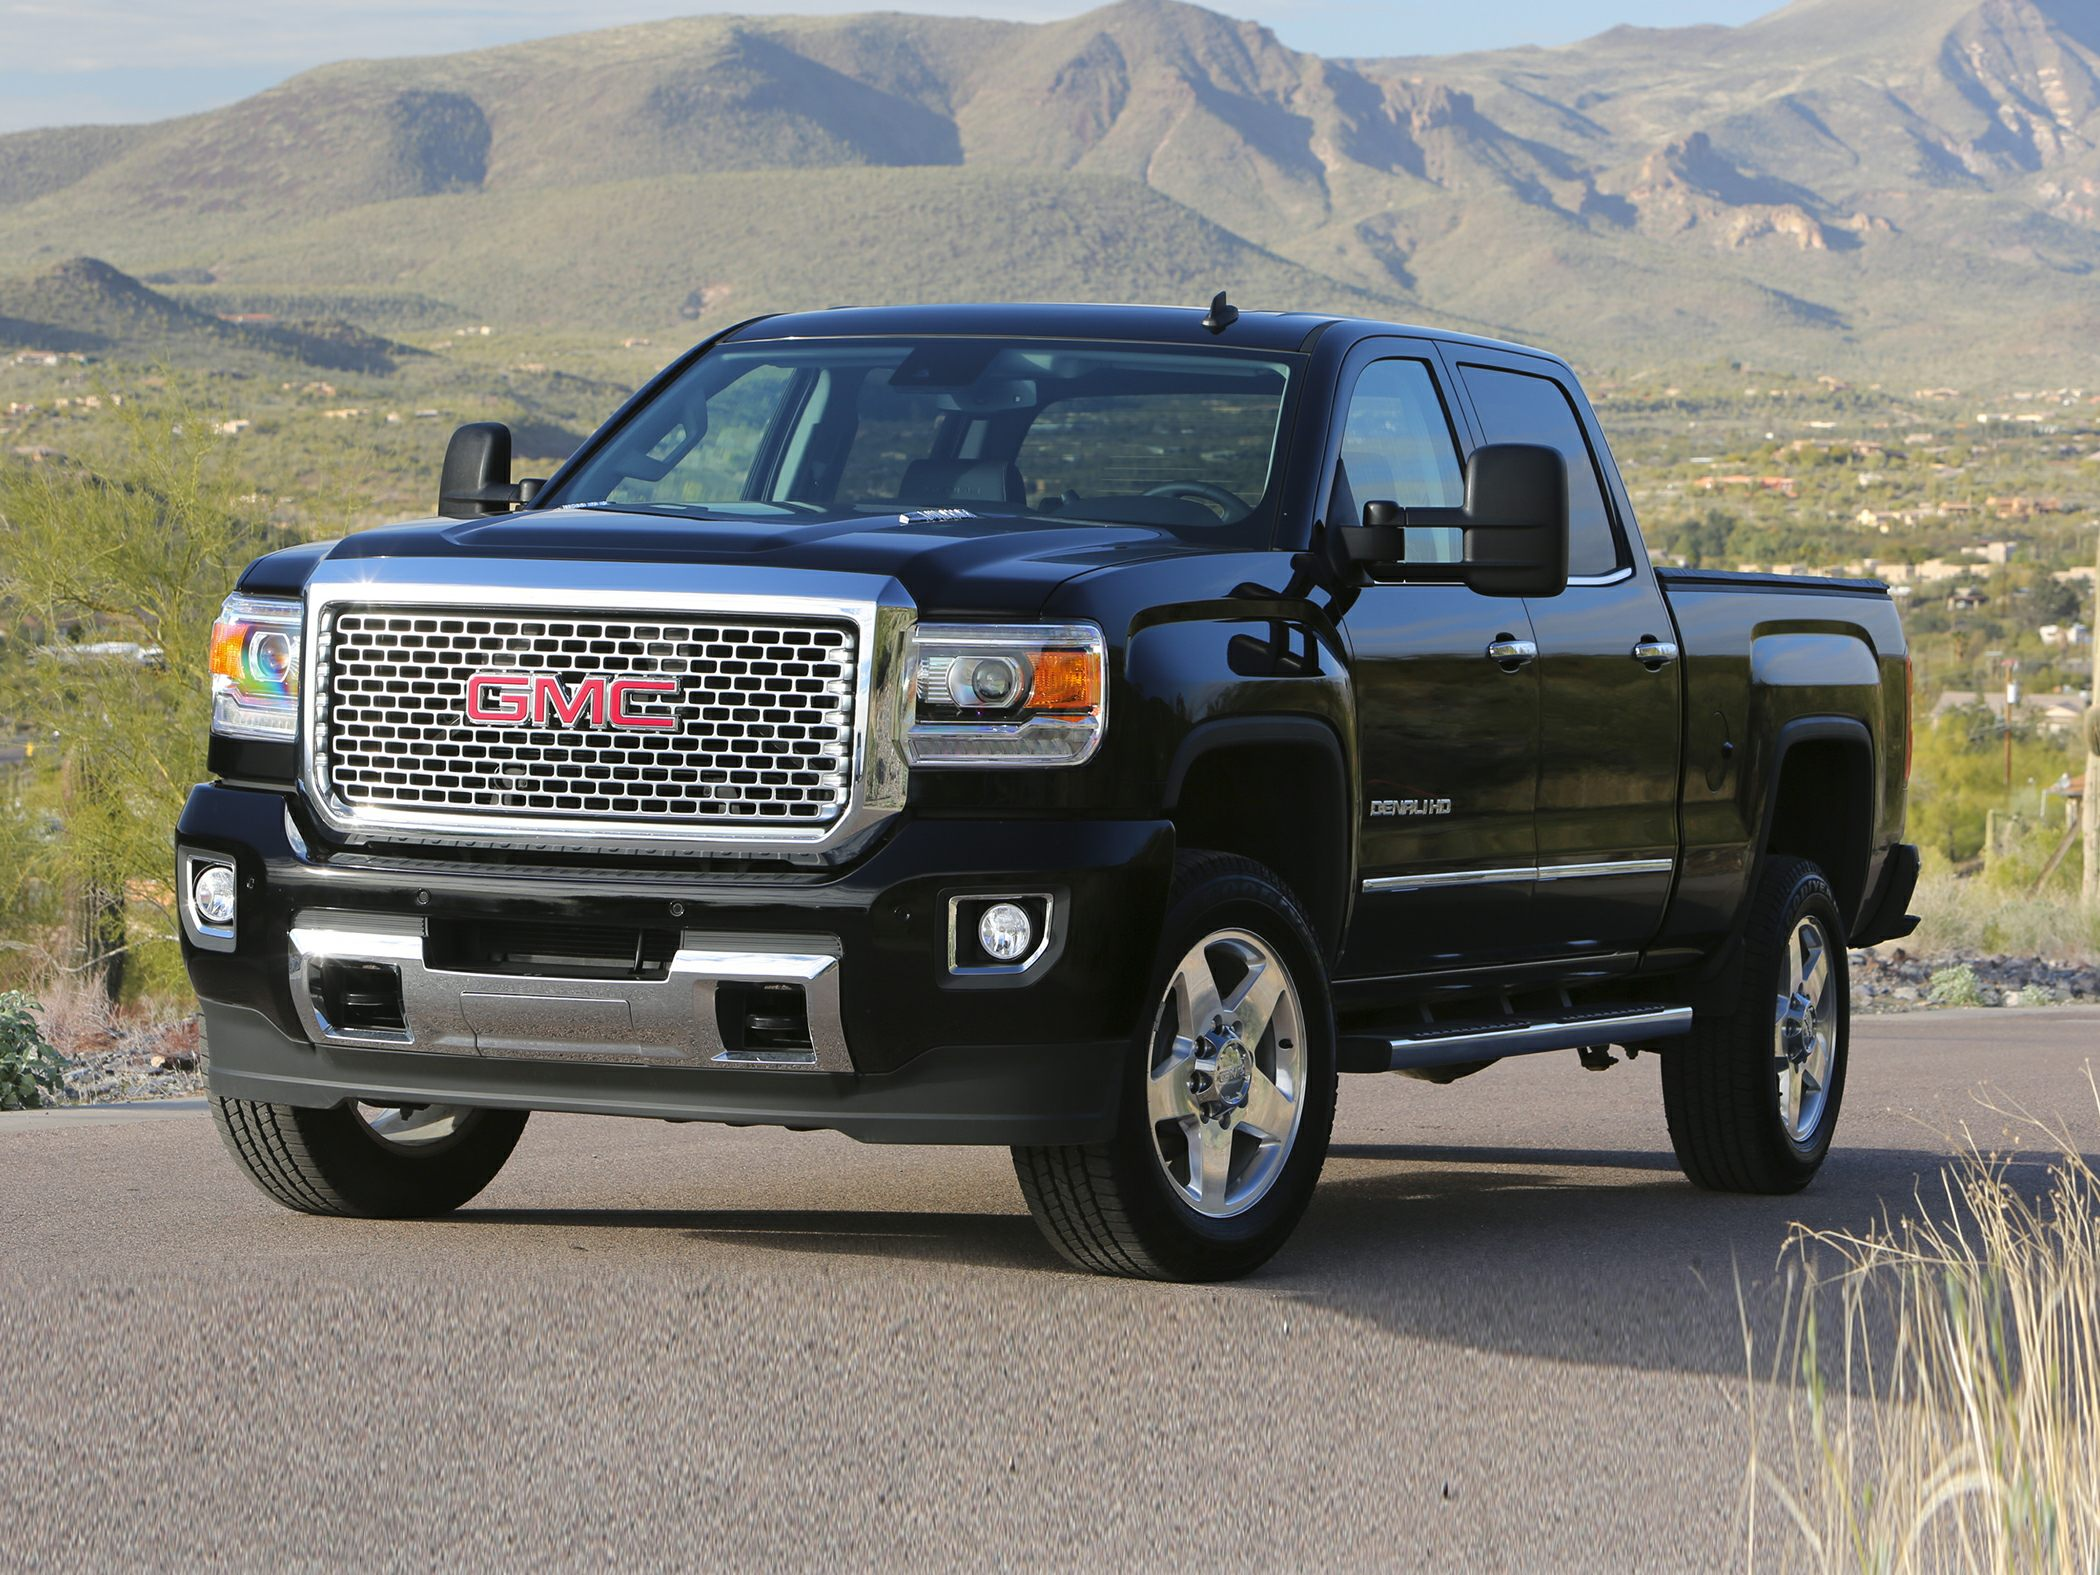 2016 gmc sierra 2500hd styles features highlights. Black Bedroom Furniture Sets. Home Design Ideas